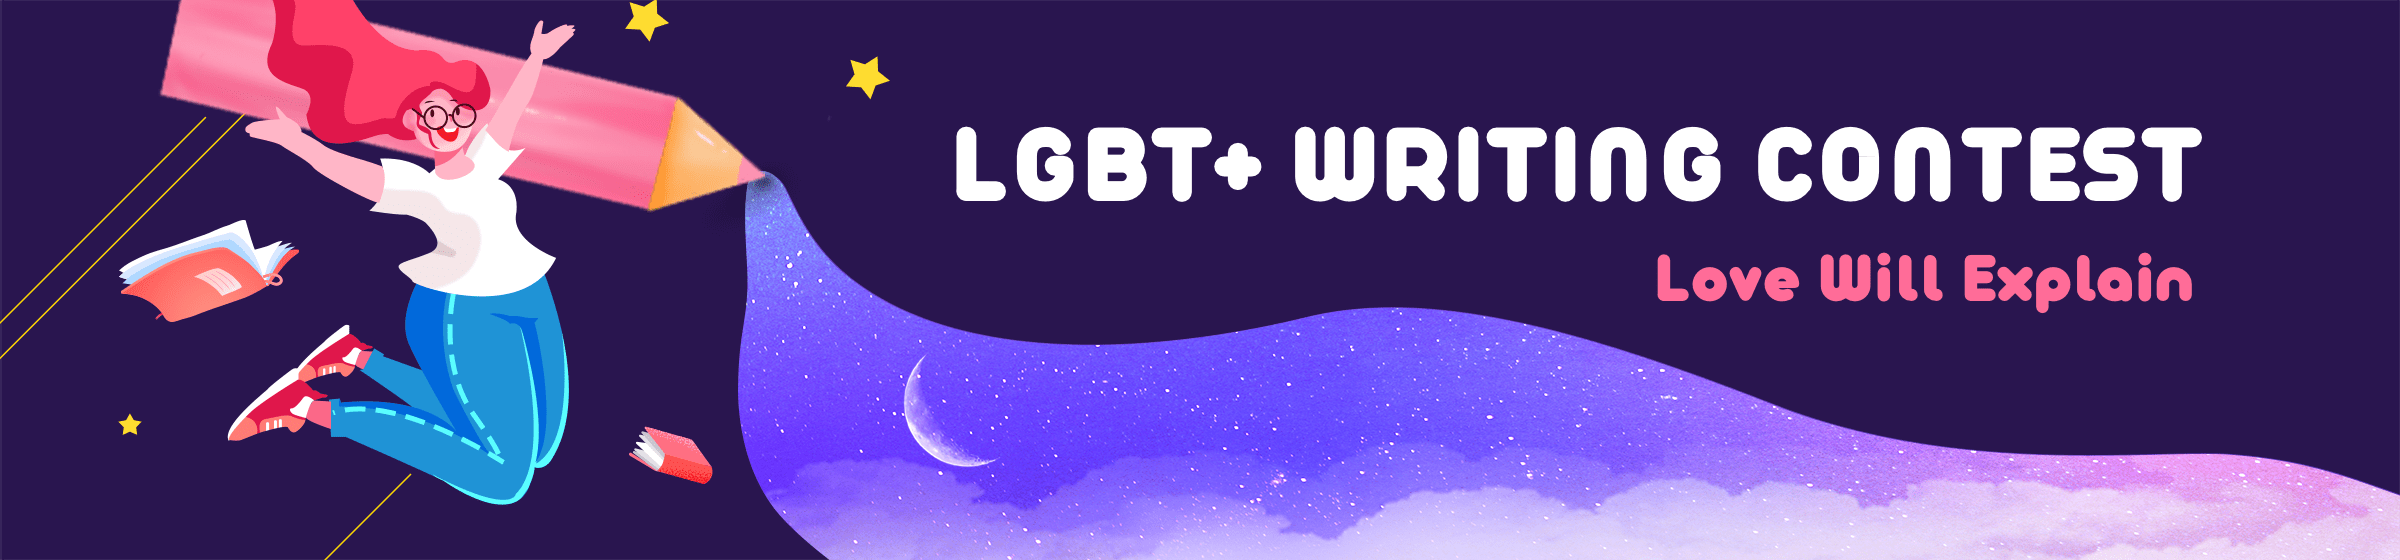 LGBT+ Writing contest@#29154f@#29154f